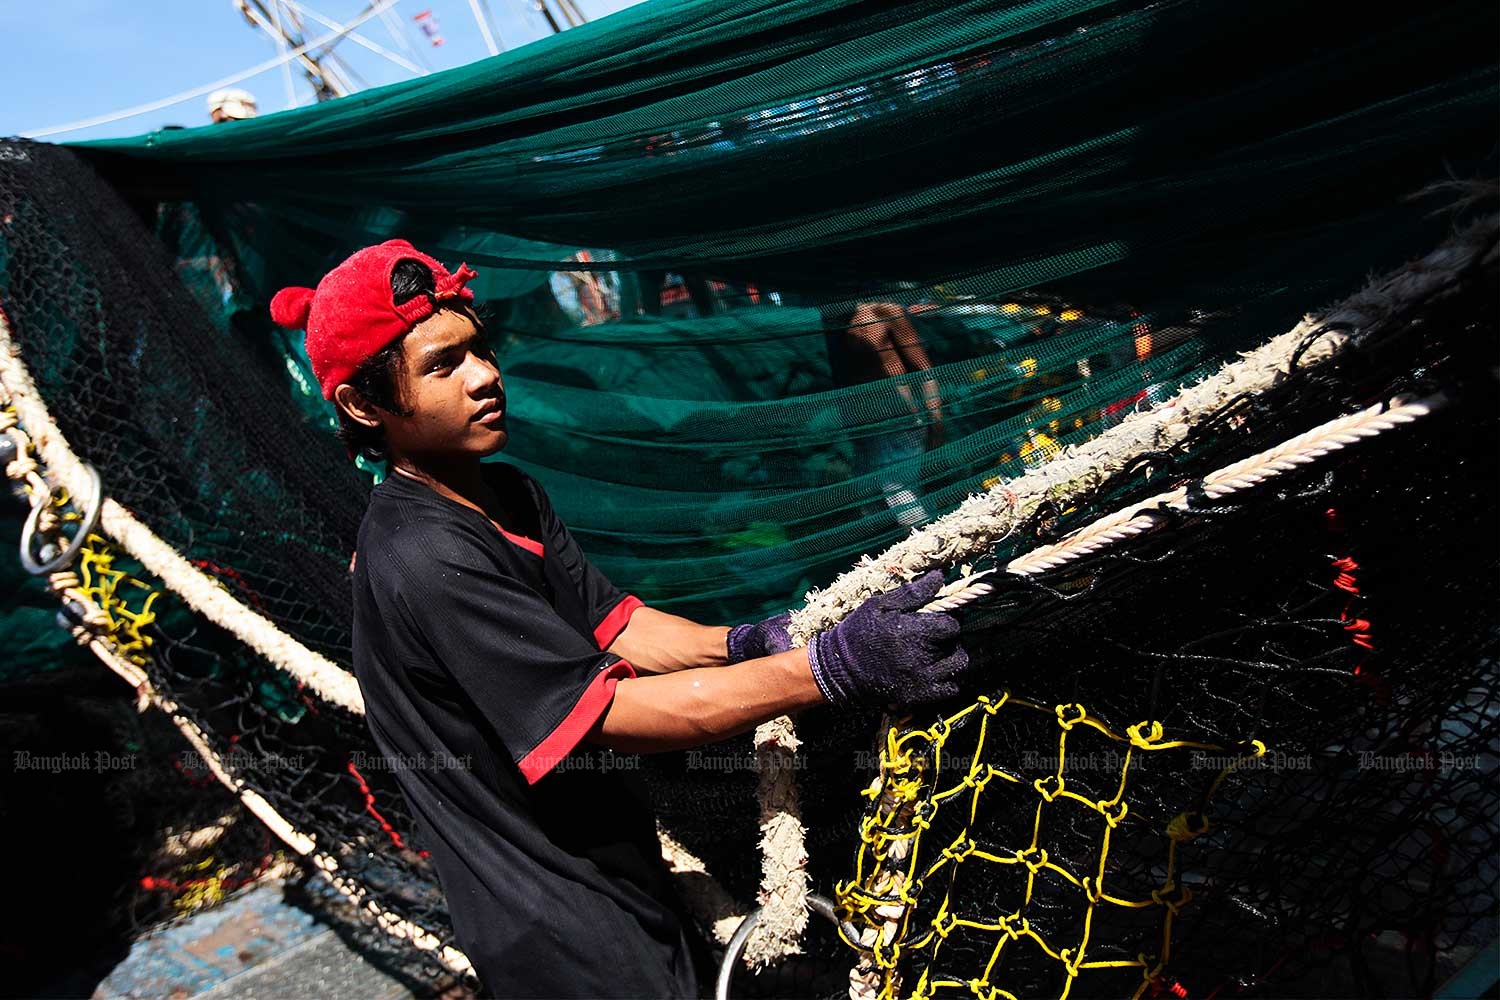 In this file photo, a young Myanmar worker pulls a fishing net while working at Ban Nam Khem wharf in the southern province of Phangnga. He is one of about 1 million migrant workers from neighbouring Myanmar who are now living and working in Thailand. (Photo by Patipat Janthong)